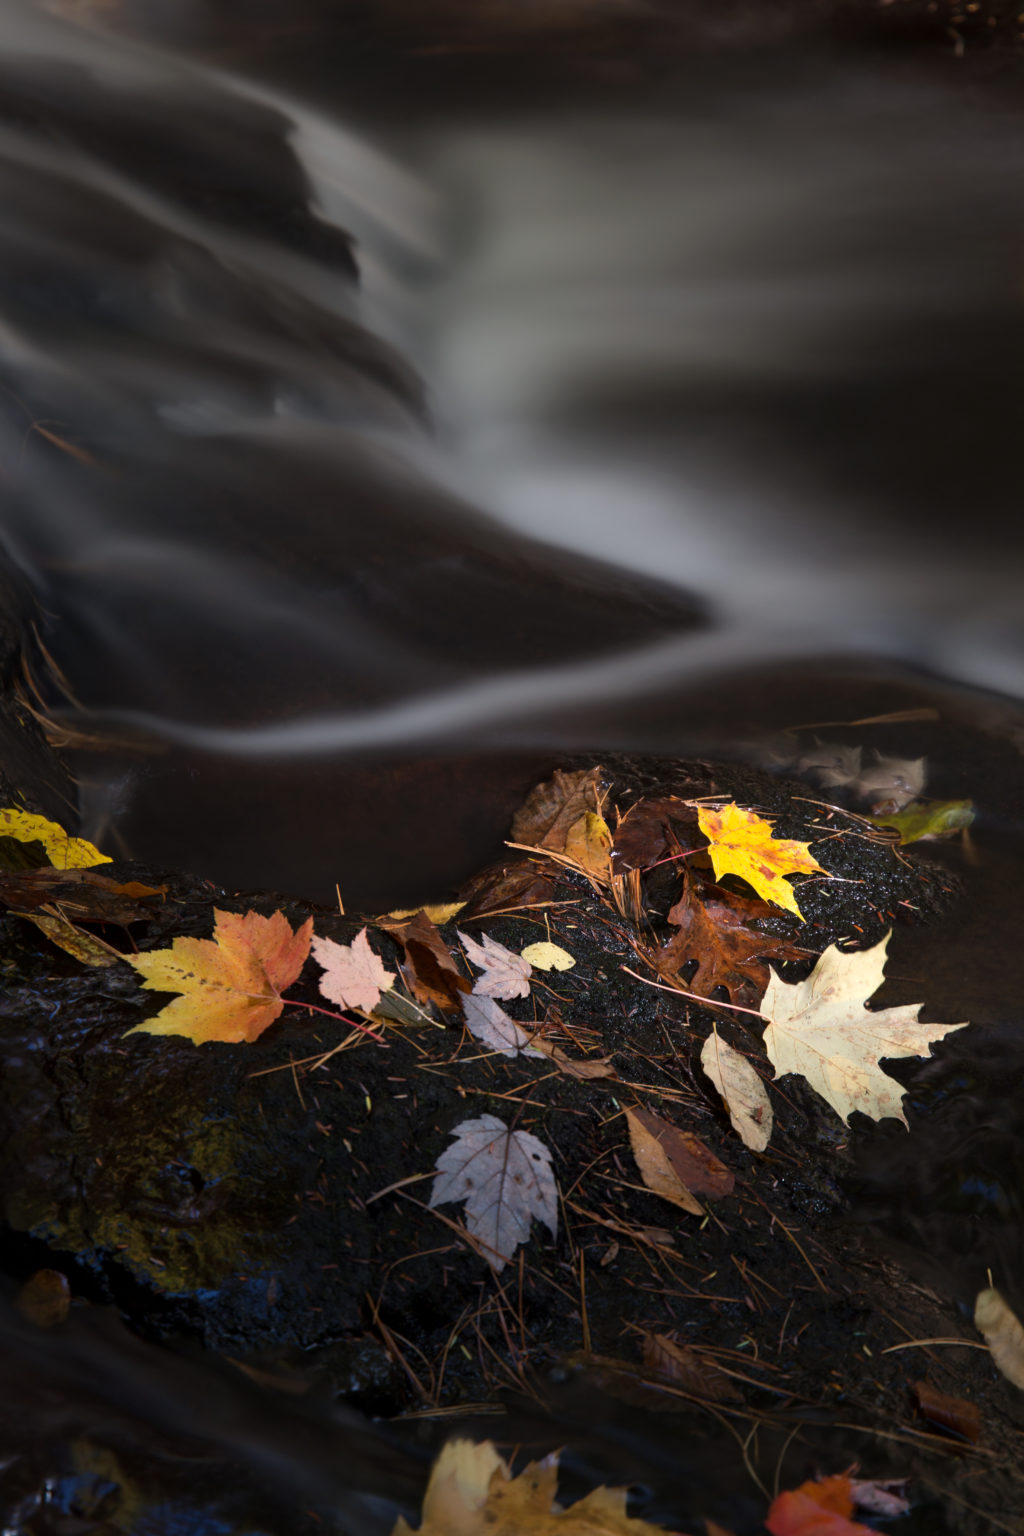 Dark Misty Stream and Glowing Leaves